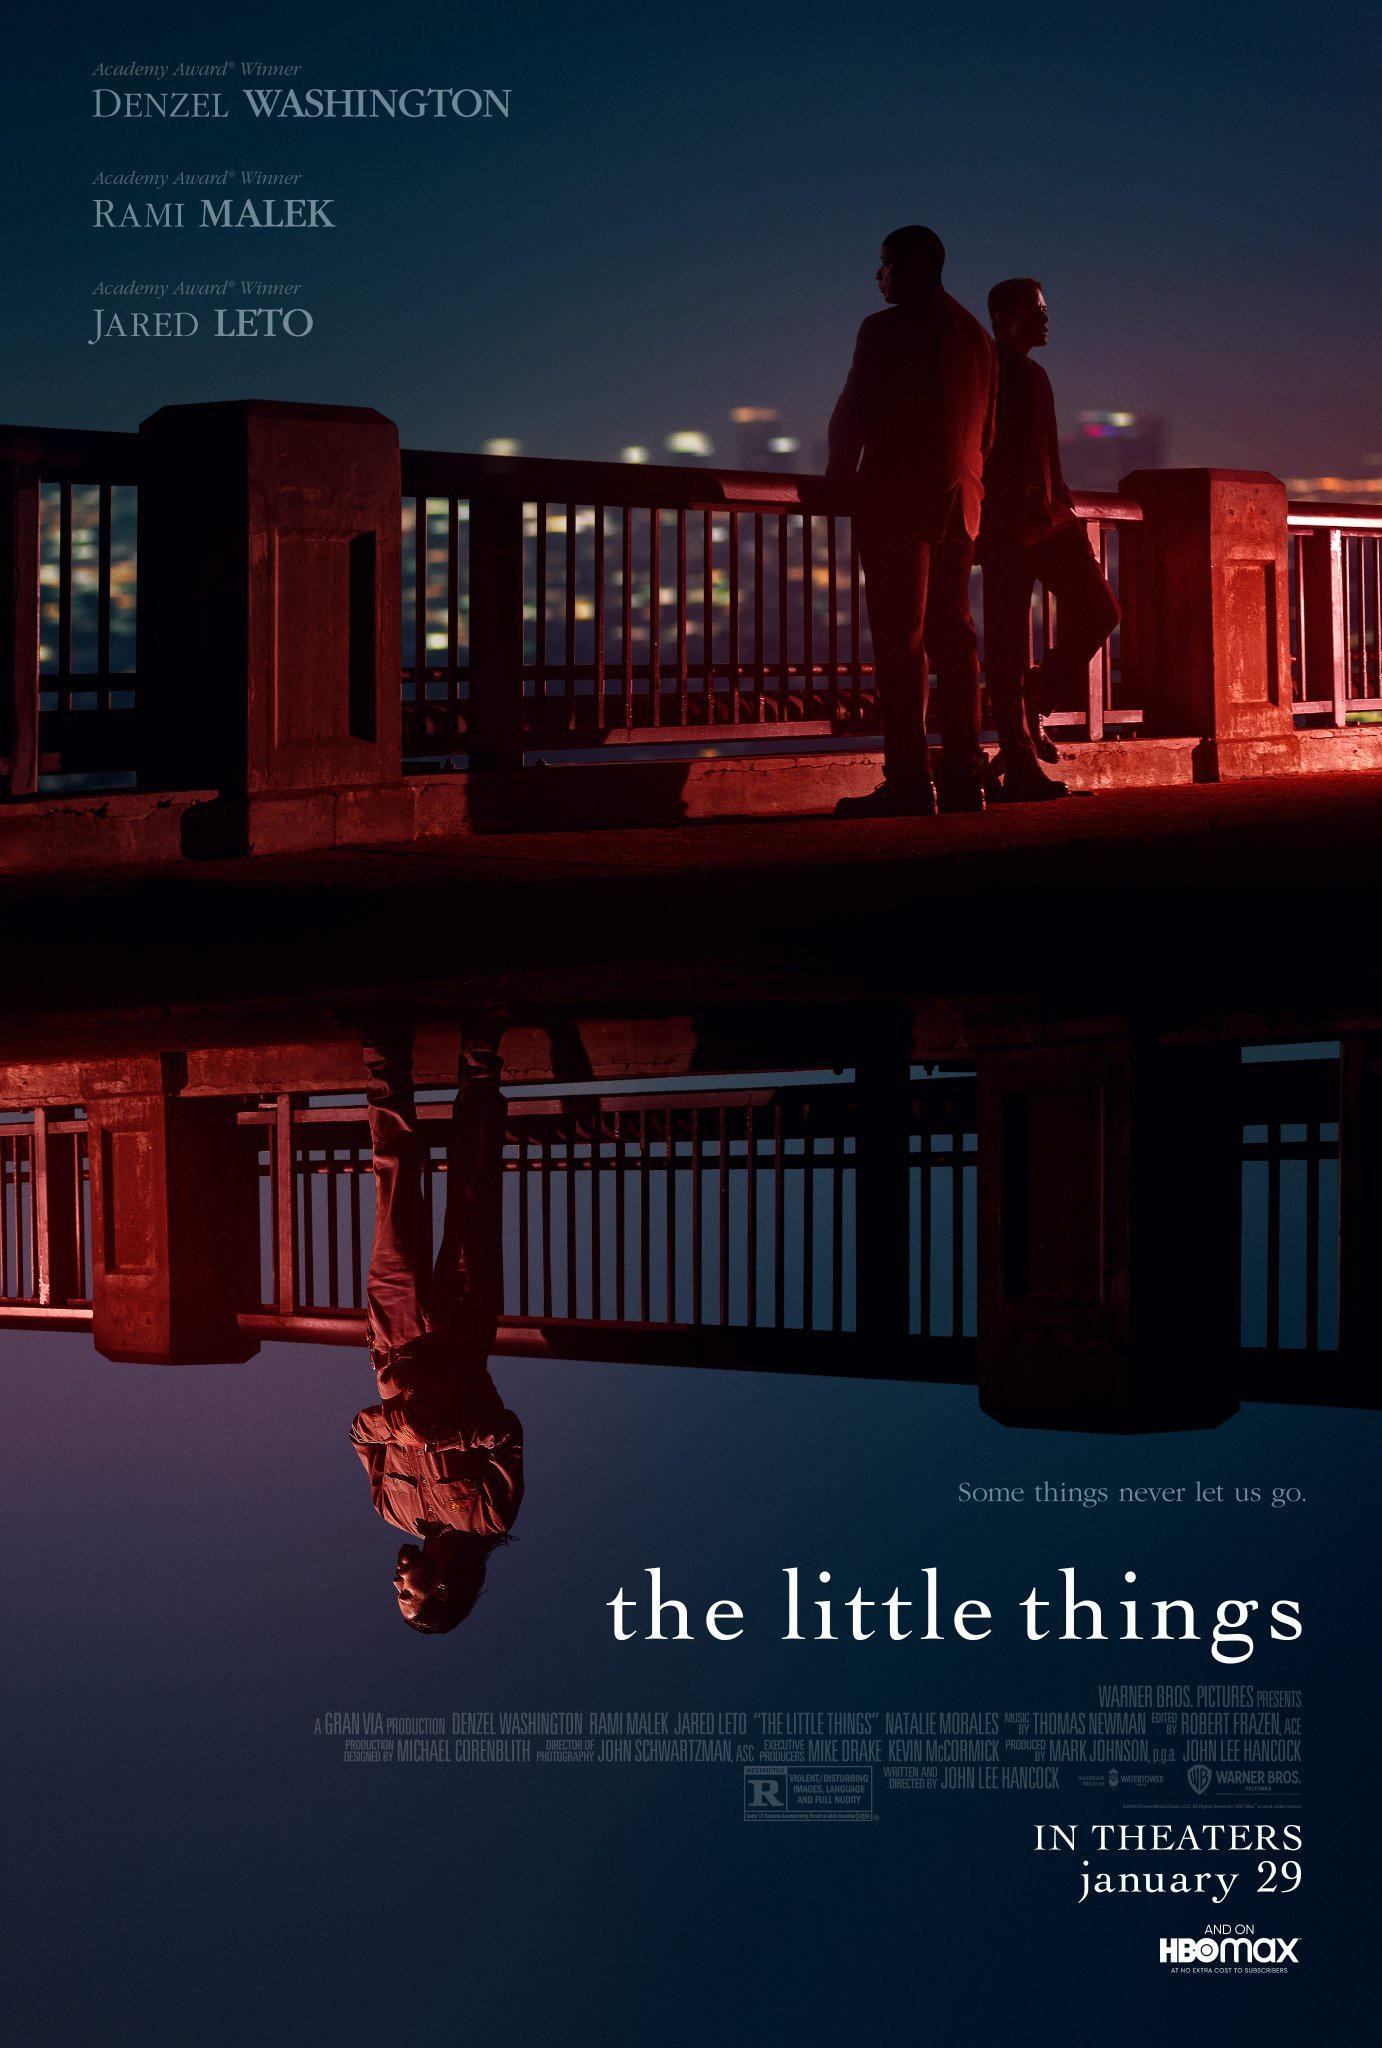 Movie poster image for THE LITTLE THINGS